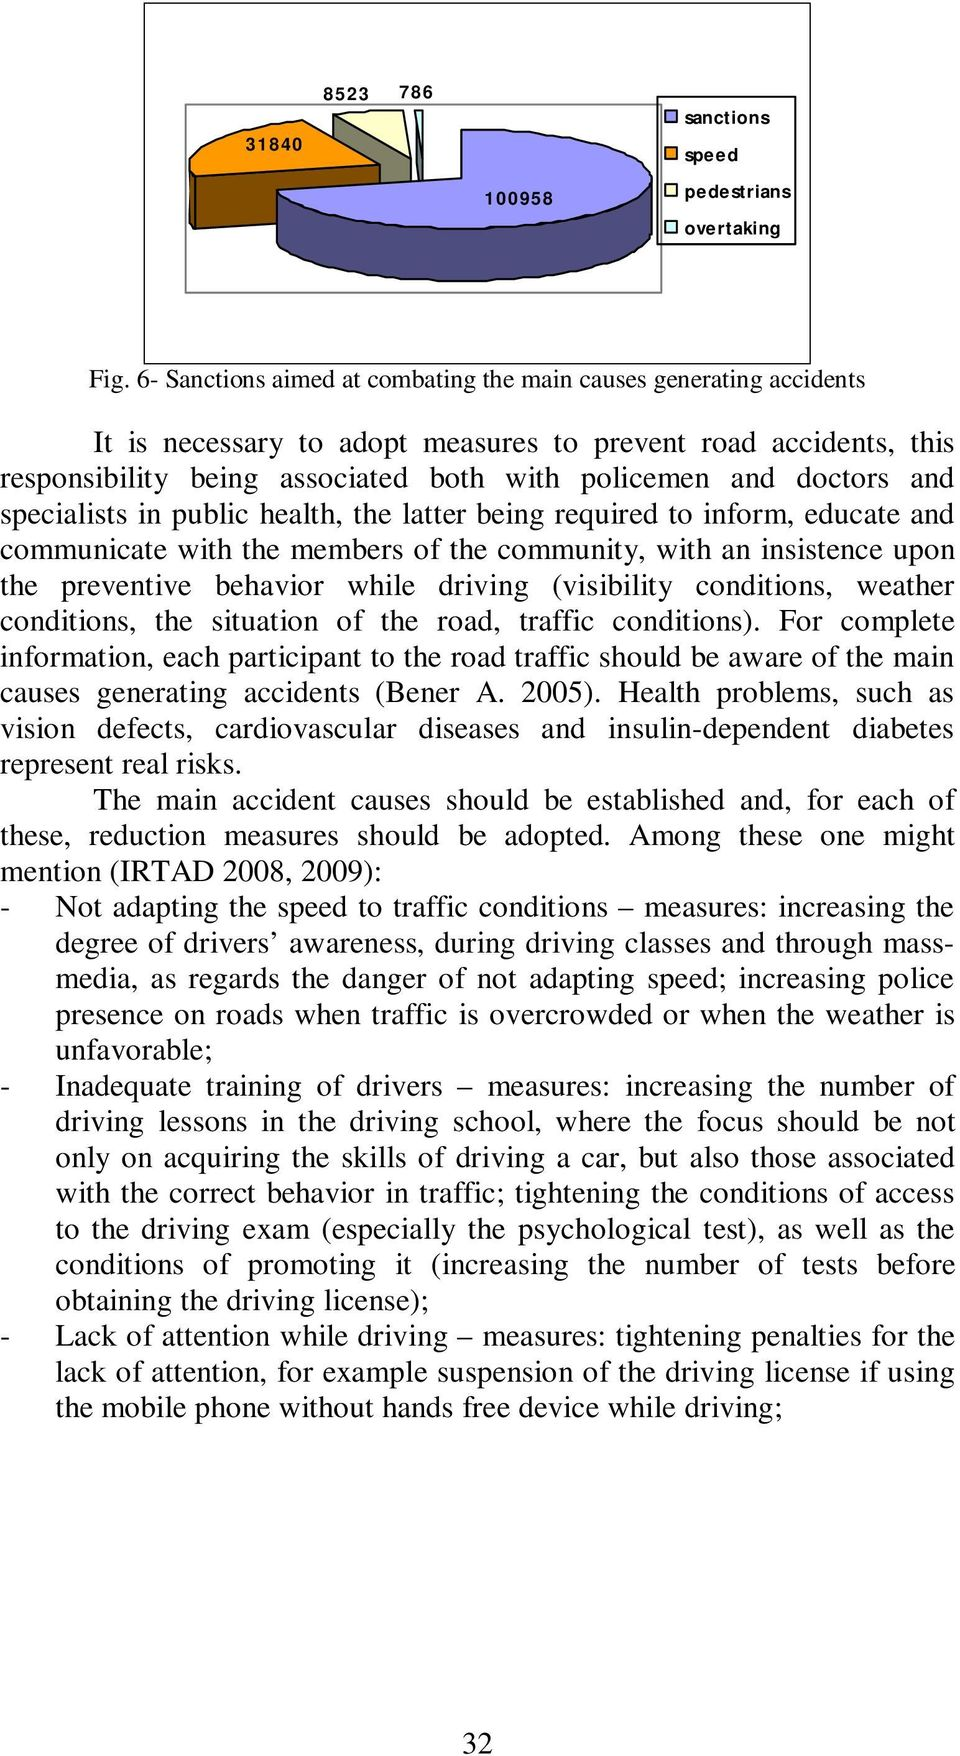 and specialists in public health, the latter being required to inform, educate and communicate with the members of the community, with an insistence upon the preventive behavior while driving